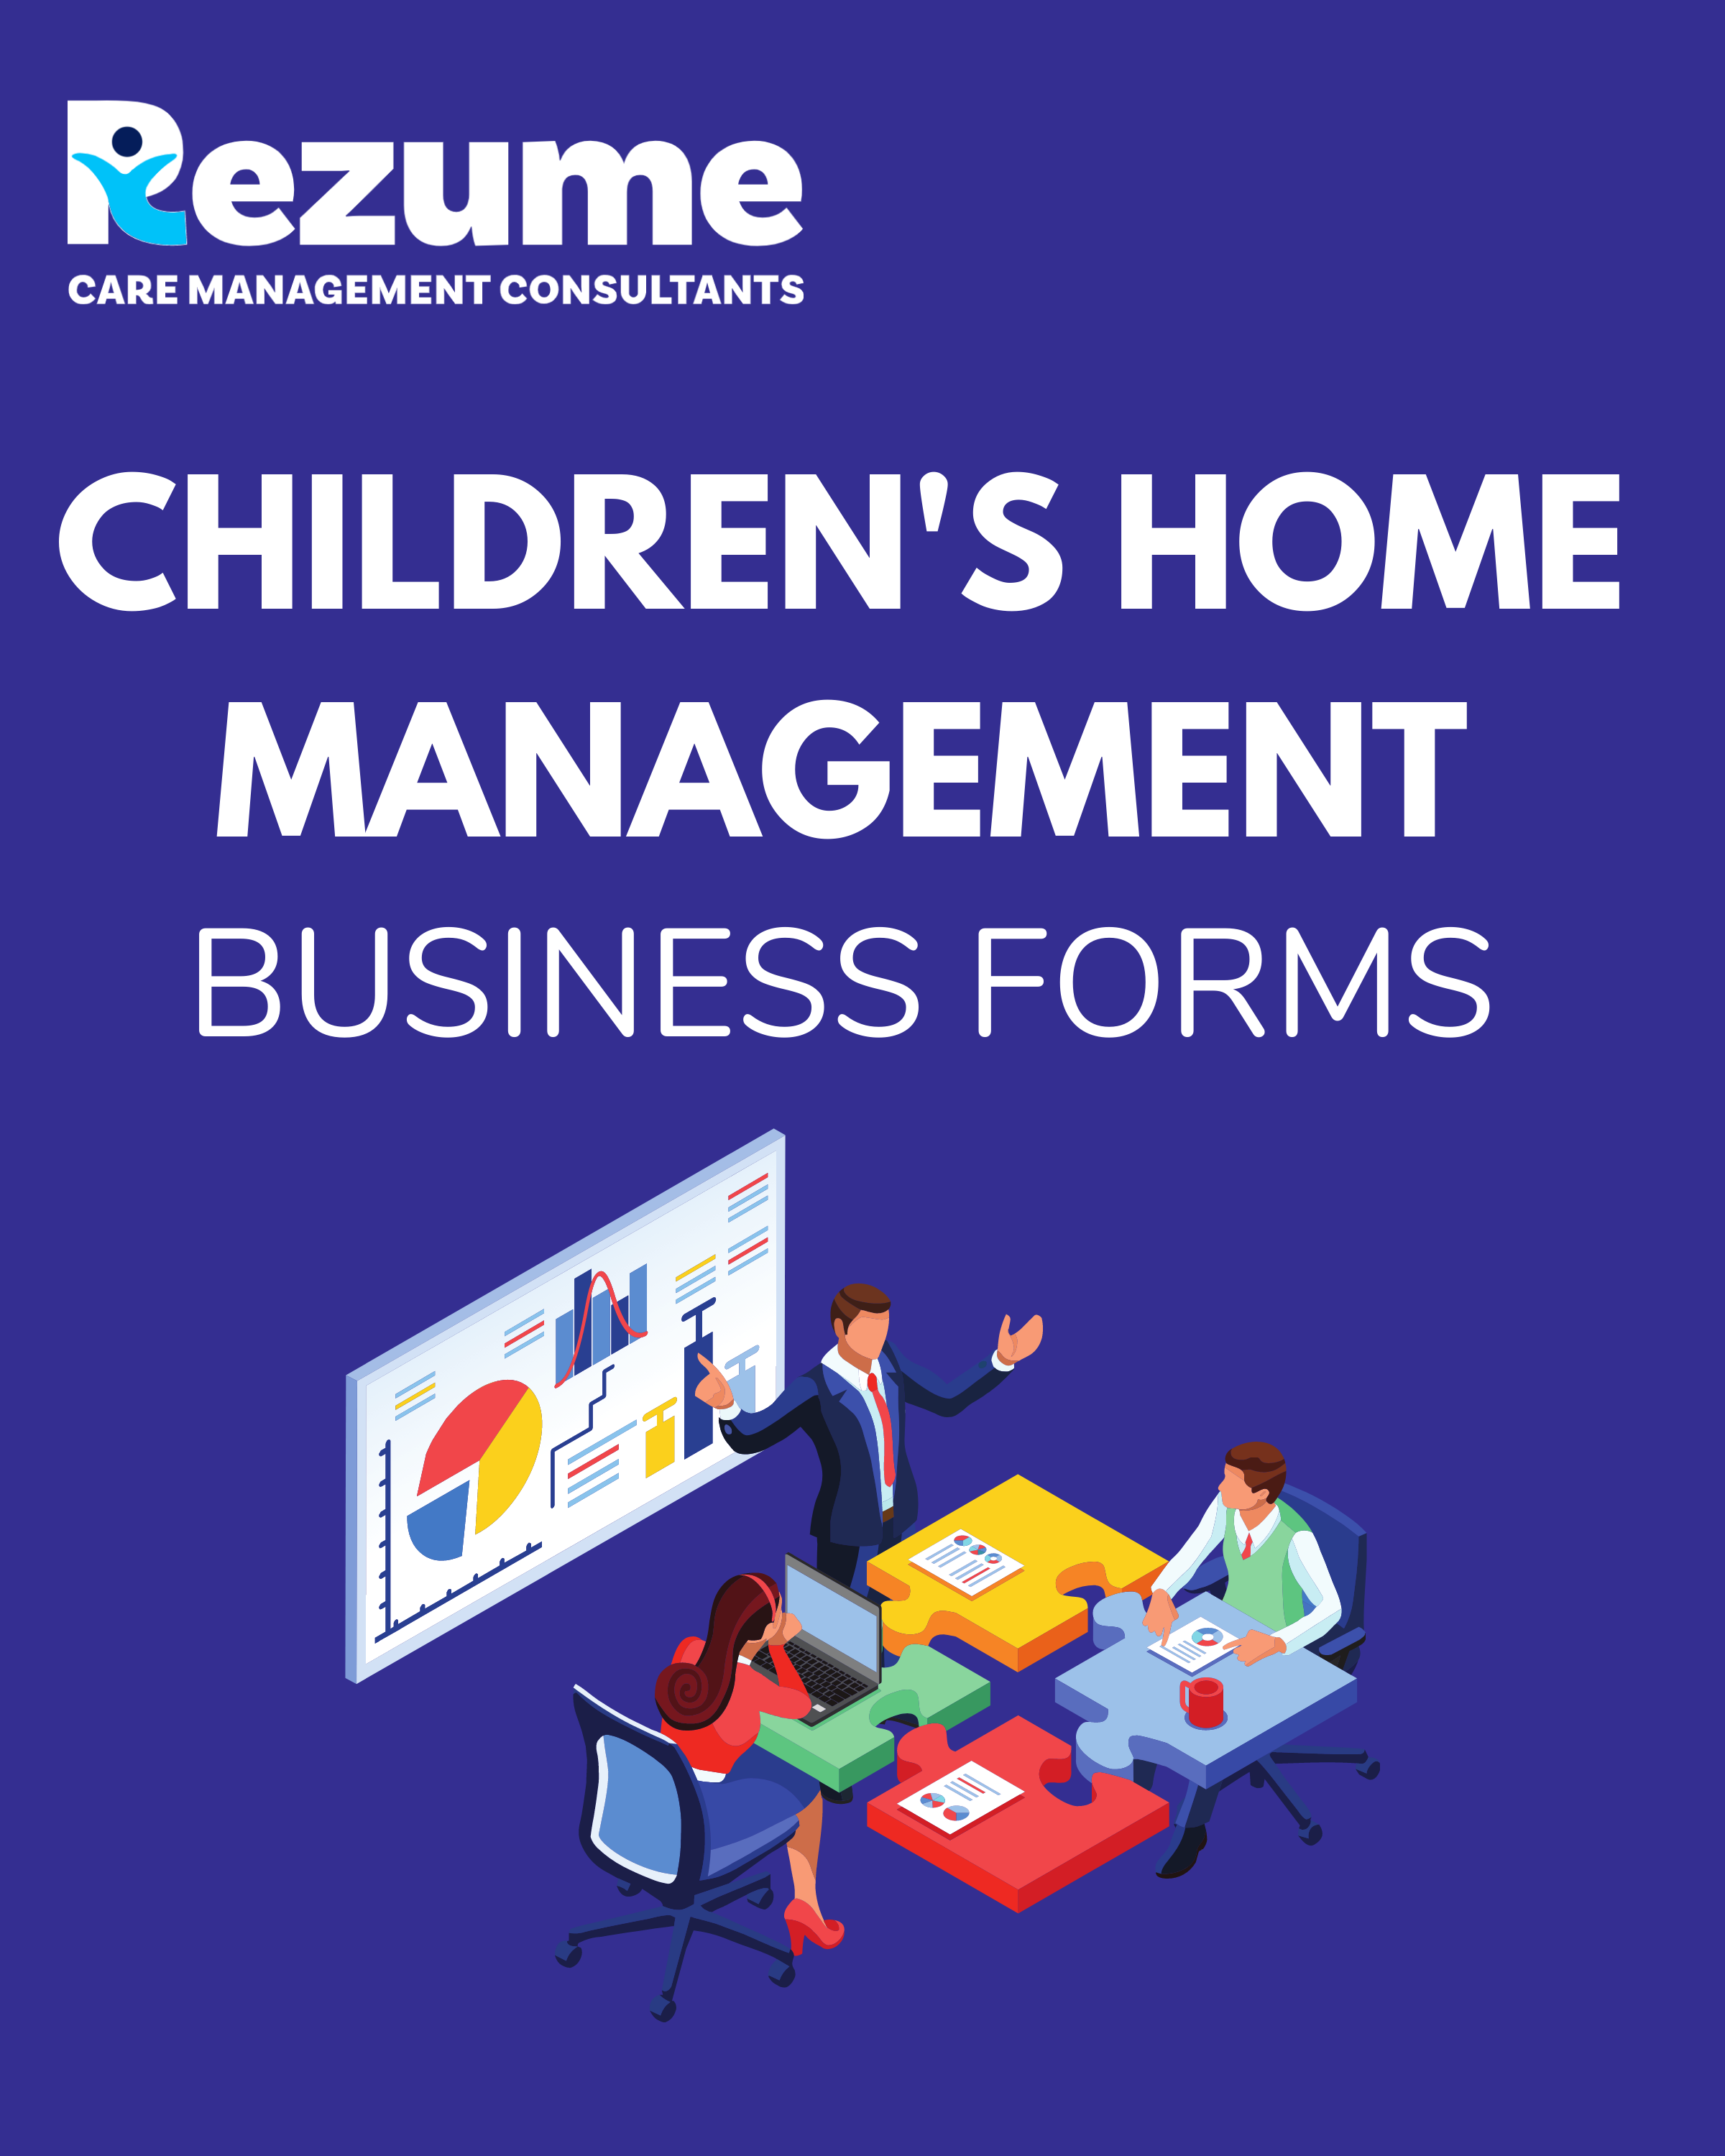 Children's home care management business forms